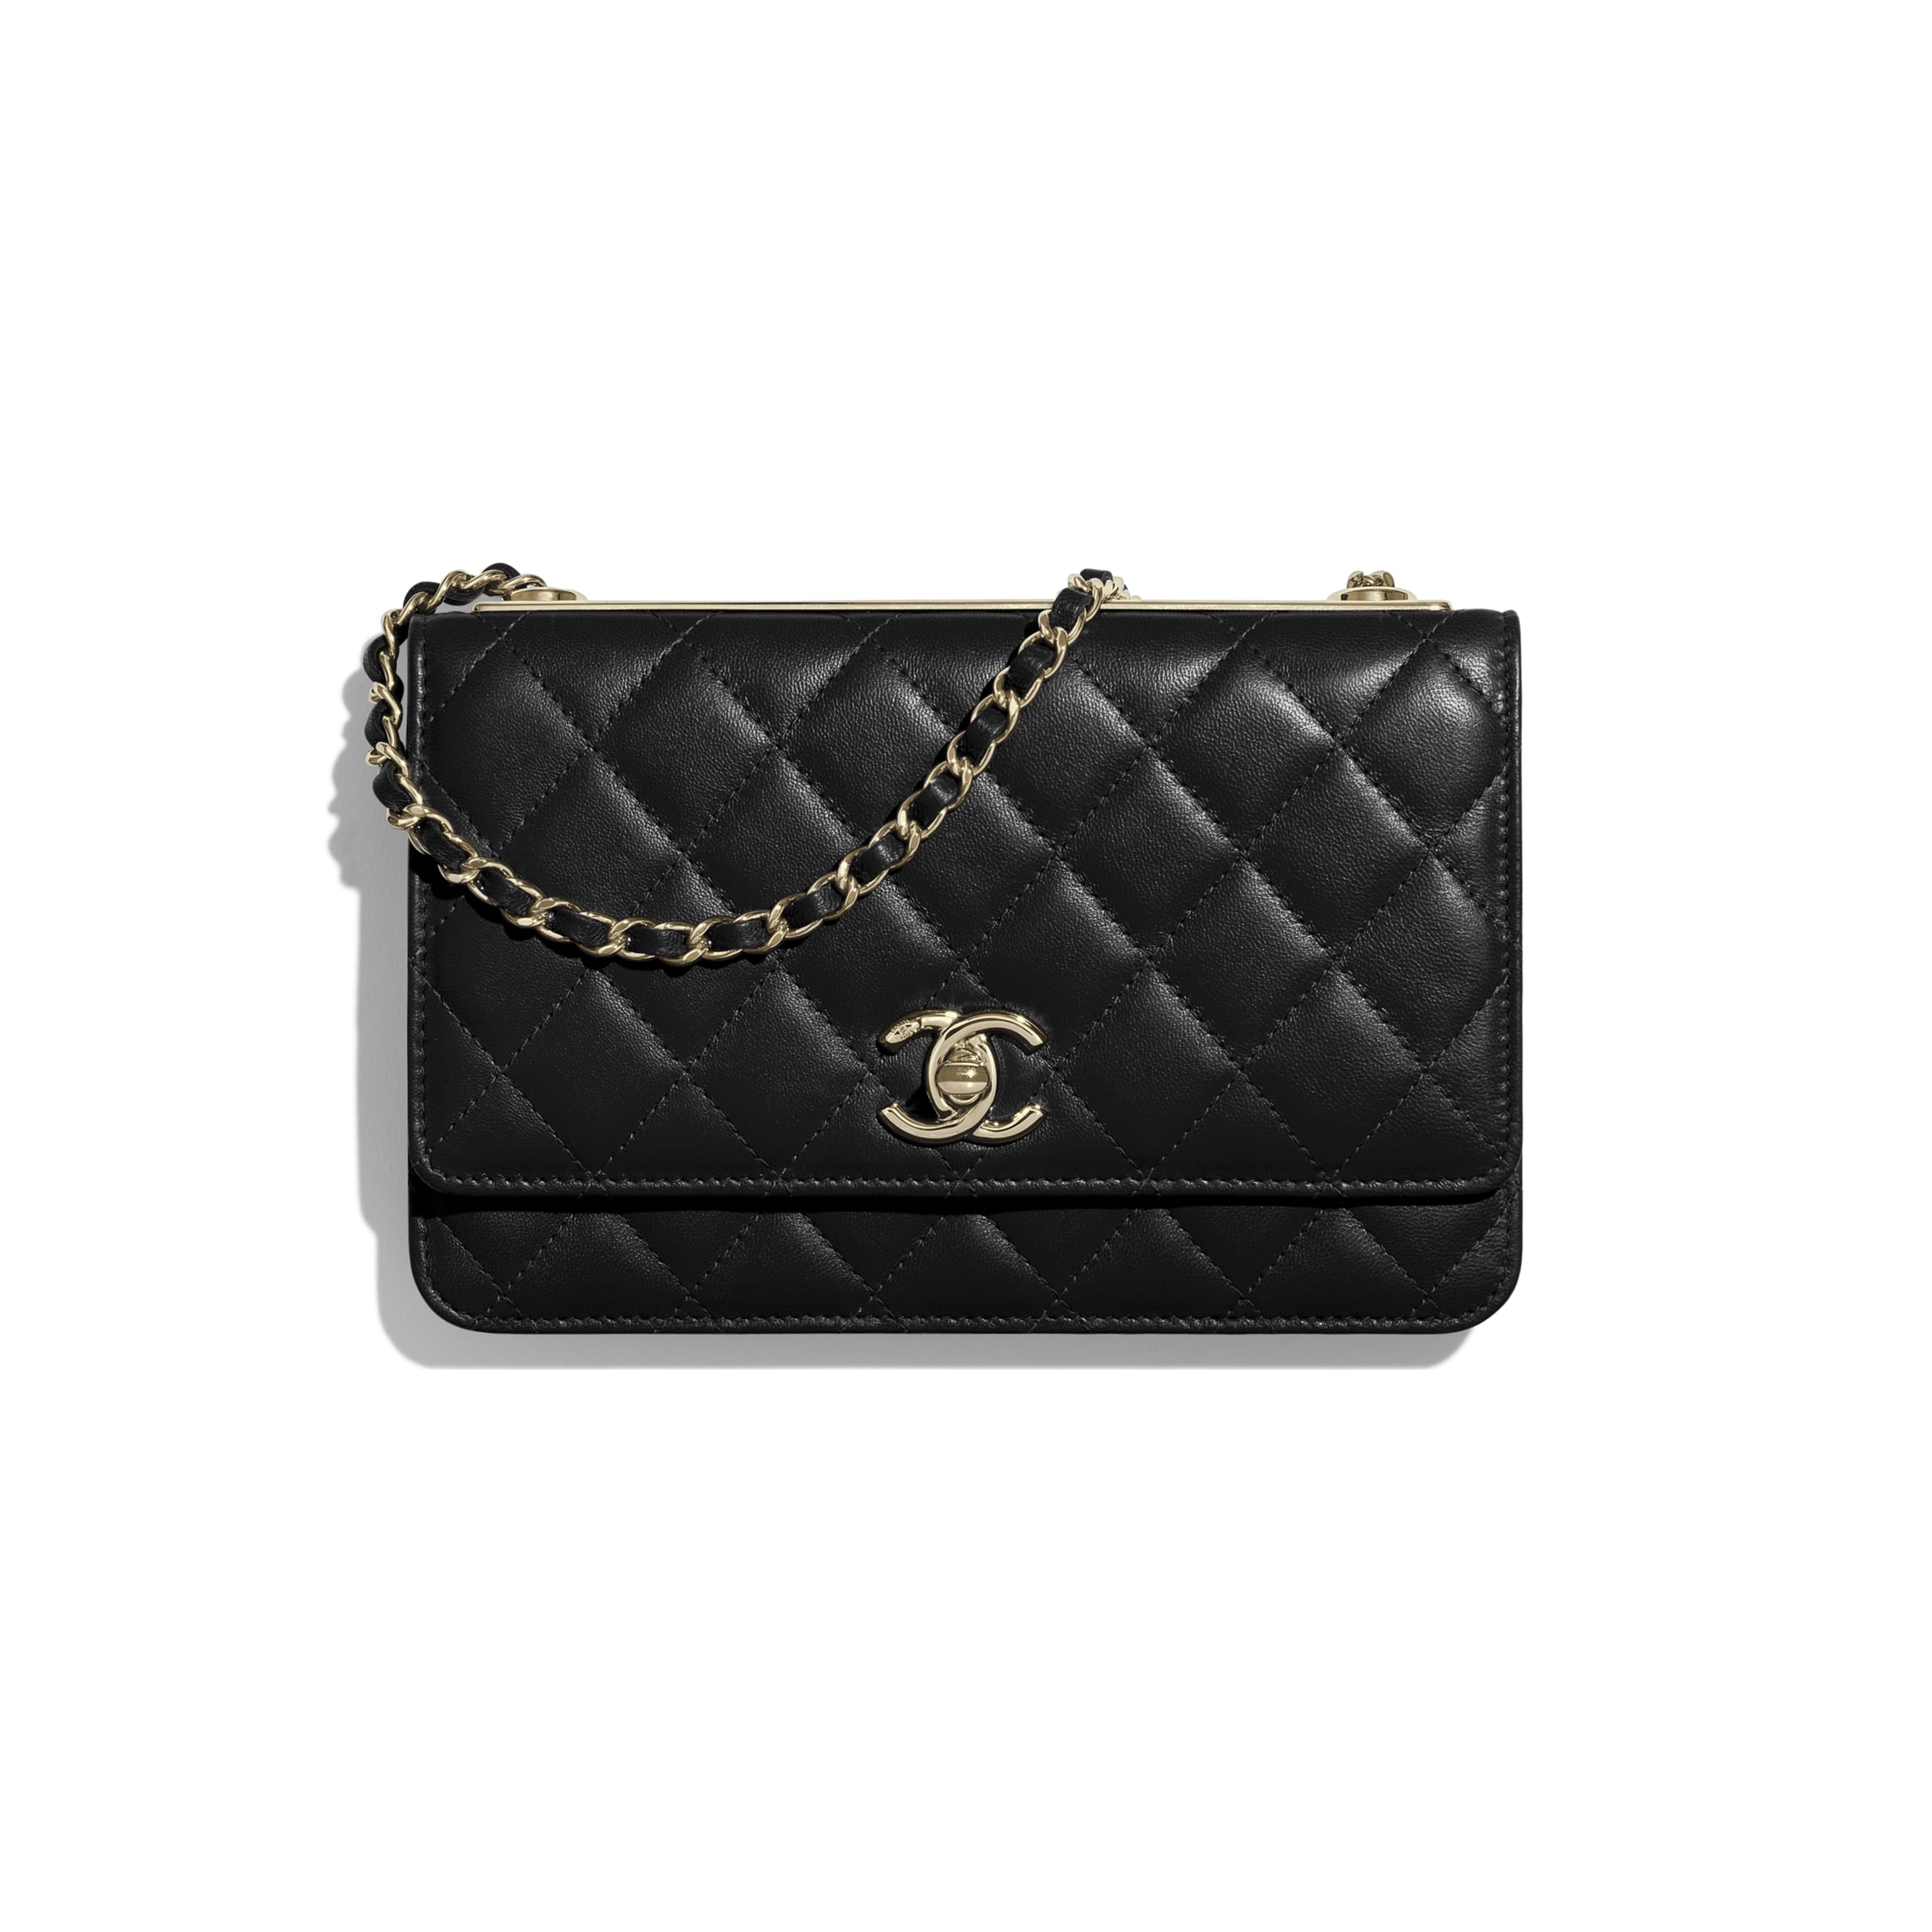 Wallet on Chain - Black - Lambskin & Gold-Tone Metal - Default view - see standard sized version